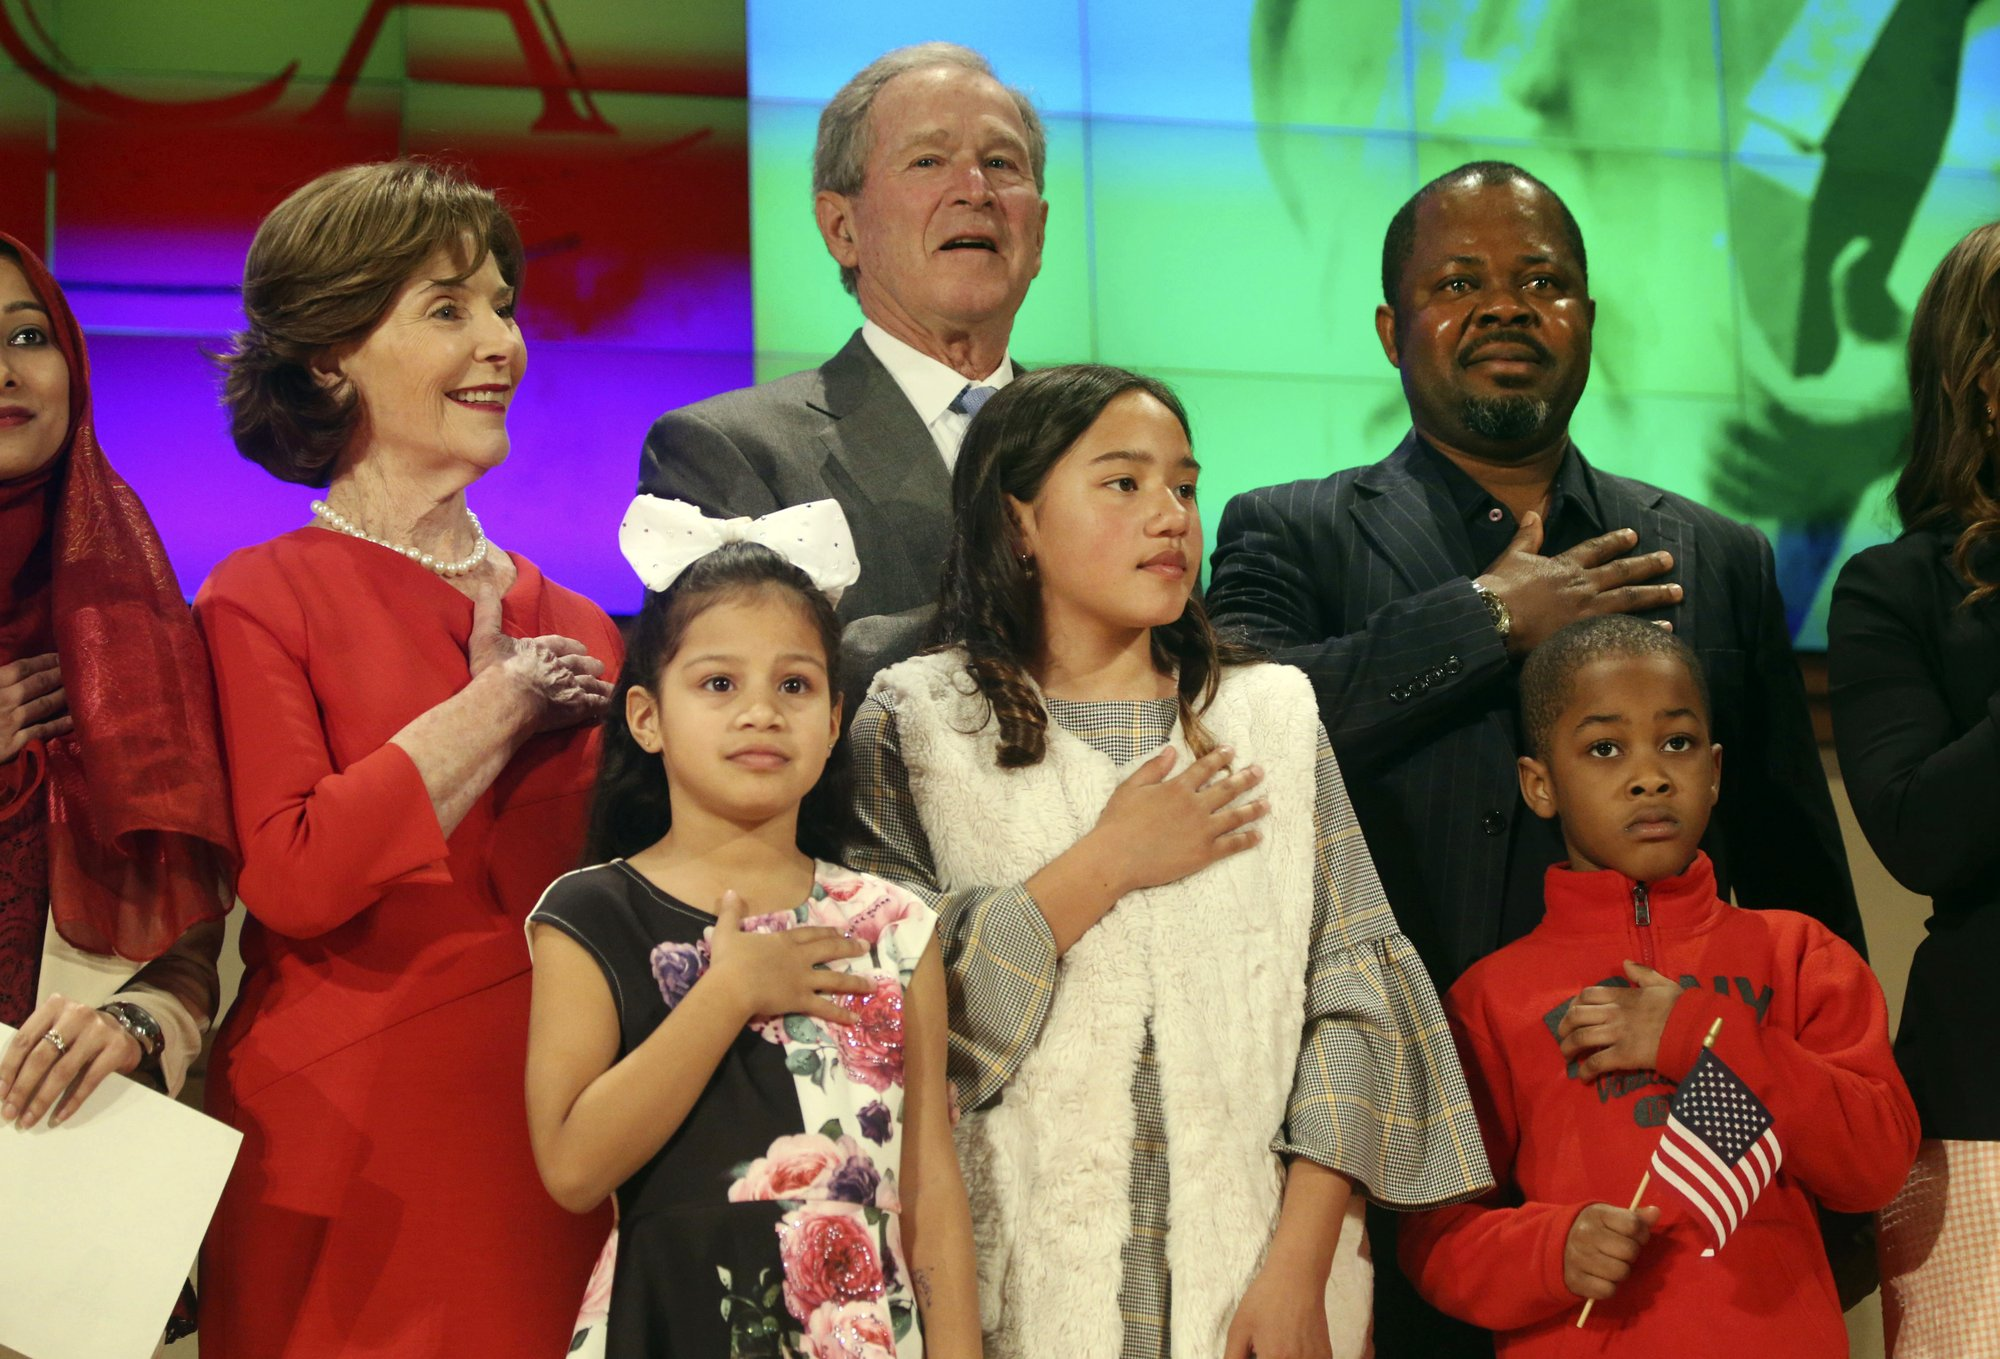 George W. Bush welcomes new US citizens at Texas ceremony